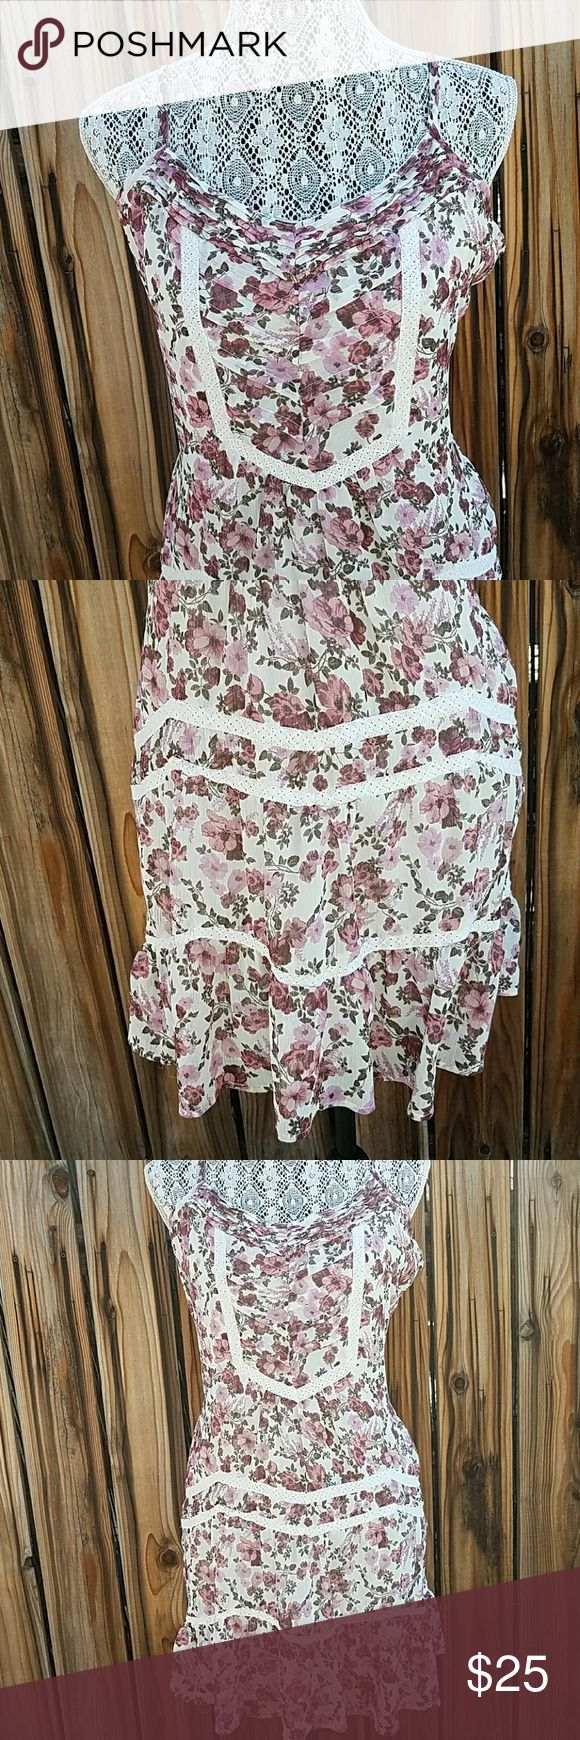 American rag floral country side dress Adjustable straps, brand new without tags. Size large. American Rag Dresses Midi